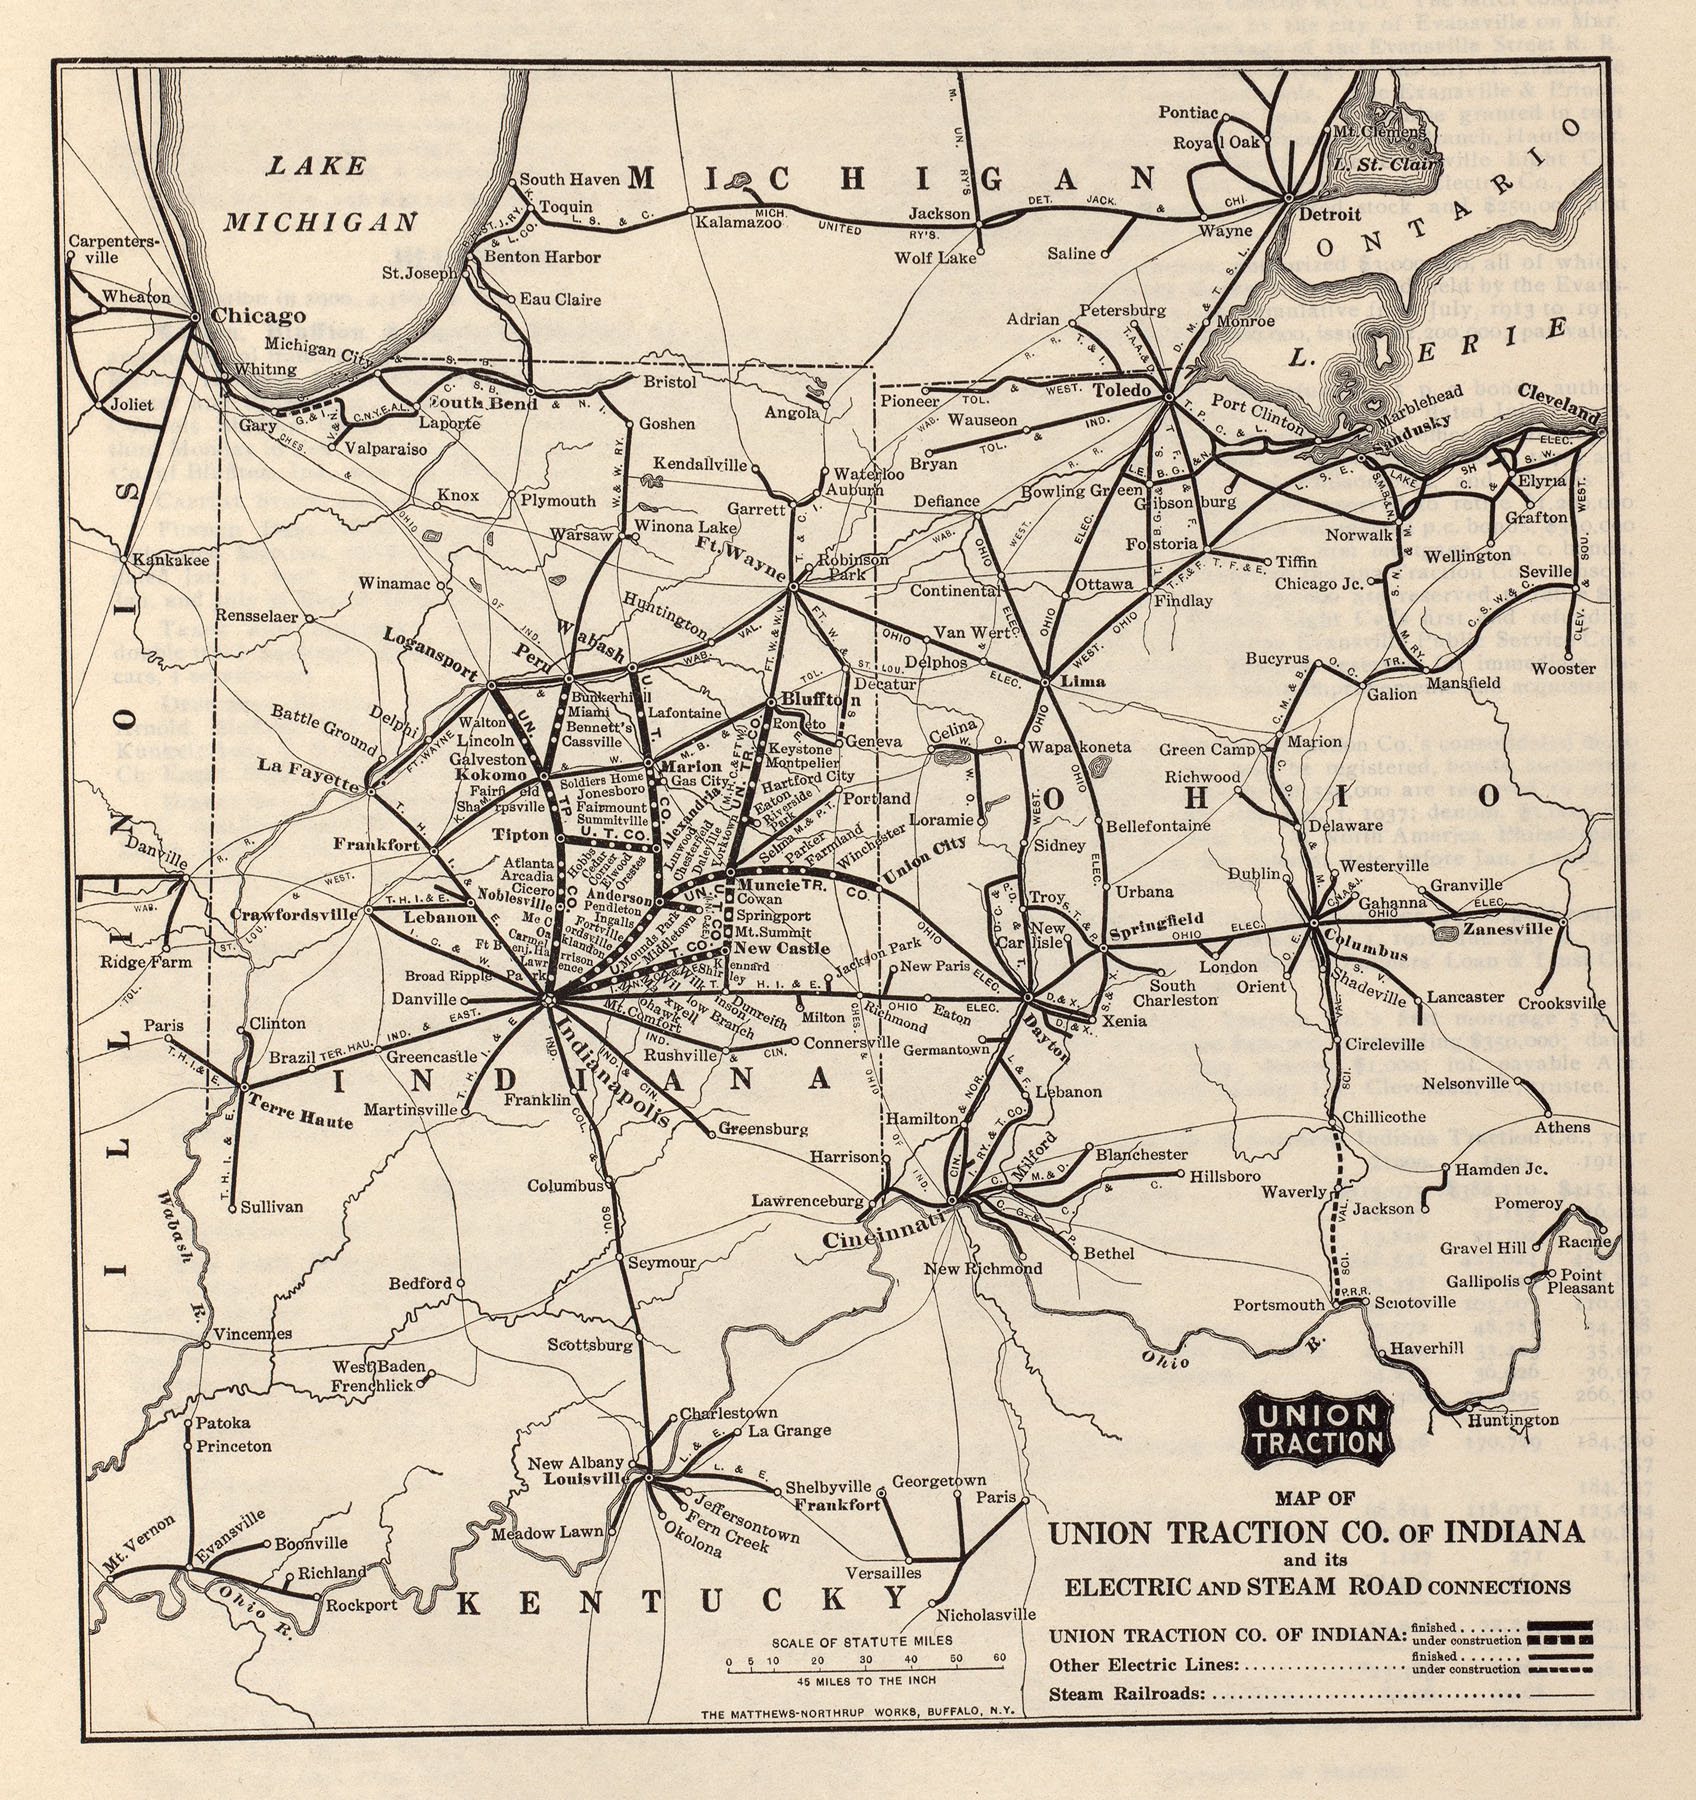 FAQ: Maps of Electric Railways - Interurbans - Indiana ... Logansport Railroad Map on shreveport map, fort thomas map, cedartown map, waycross map, hopkinsville map, fairmont map, tell city map, mcpherson map, greencastle map, livonia map, clayton map, bennettsville map, villa rica map, elizabeth map, lafayette map, valparaiso map, oolitic map, scottsburg in map, lake charles map, london map,